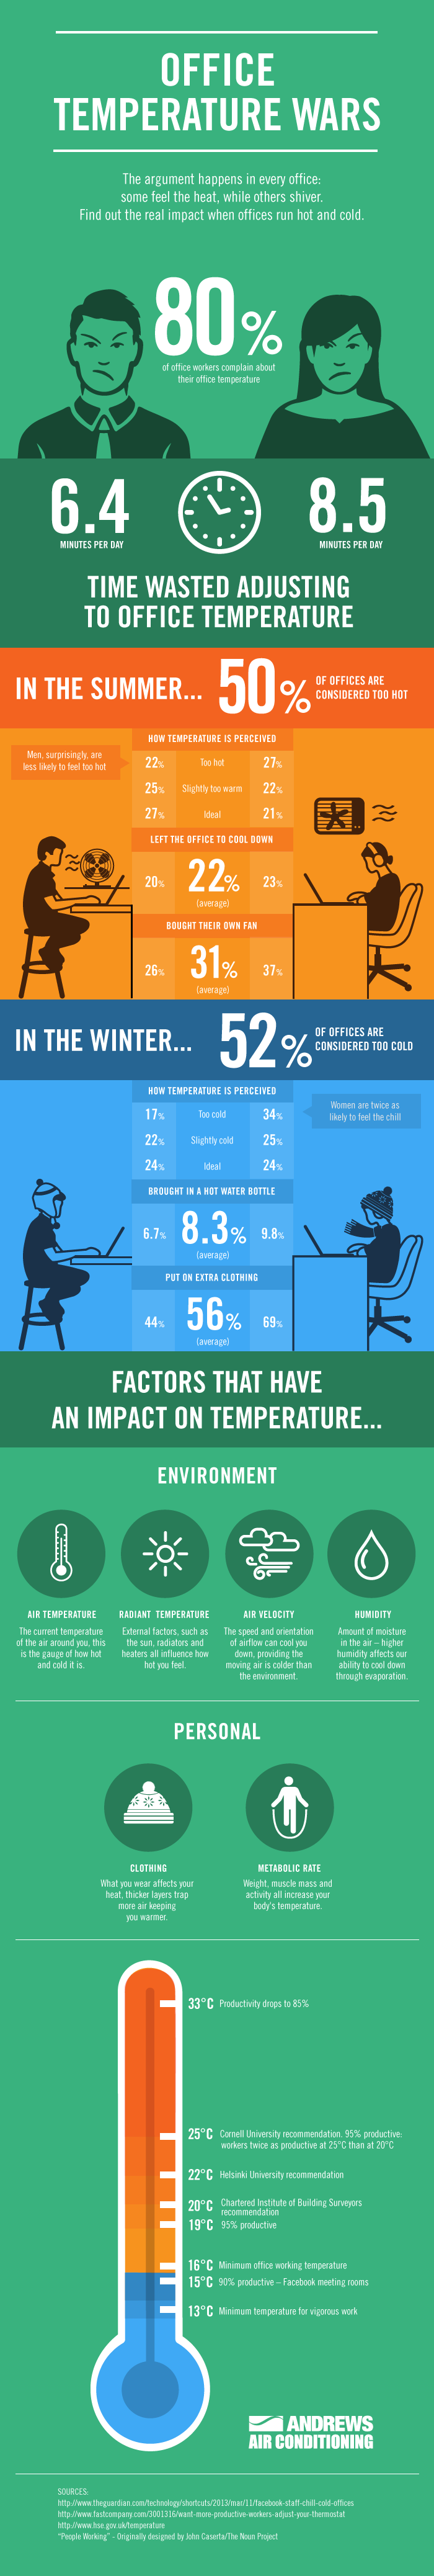 Andrews Sykes Office Temperature Wars infographic